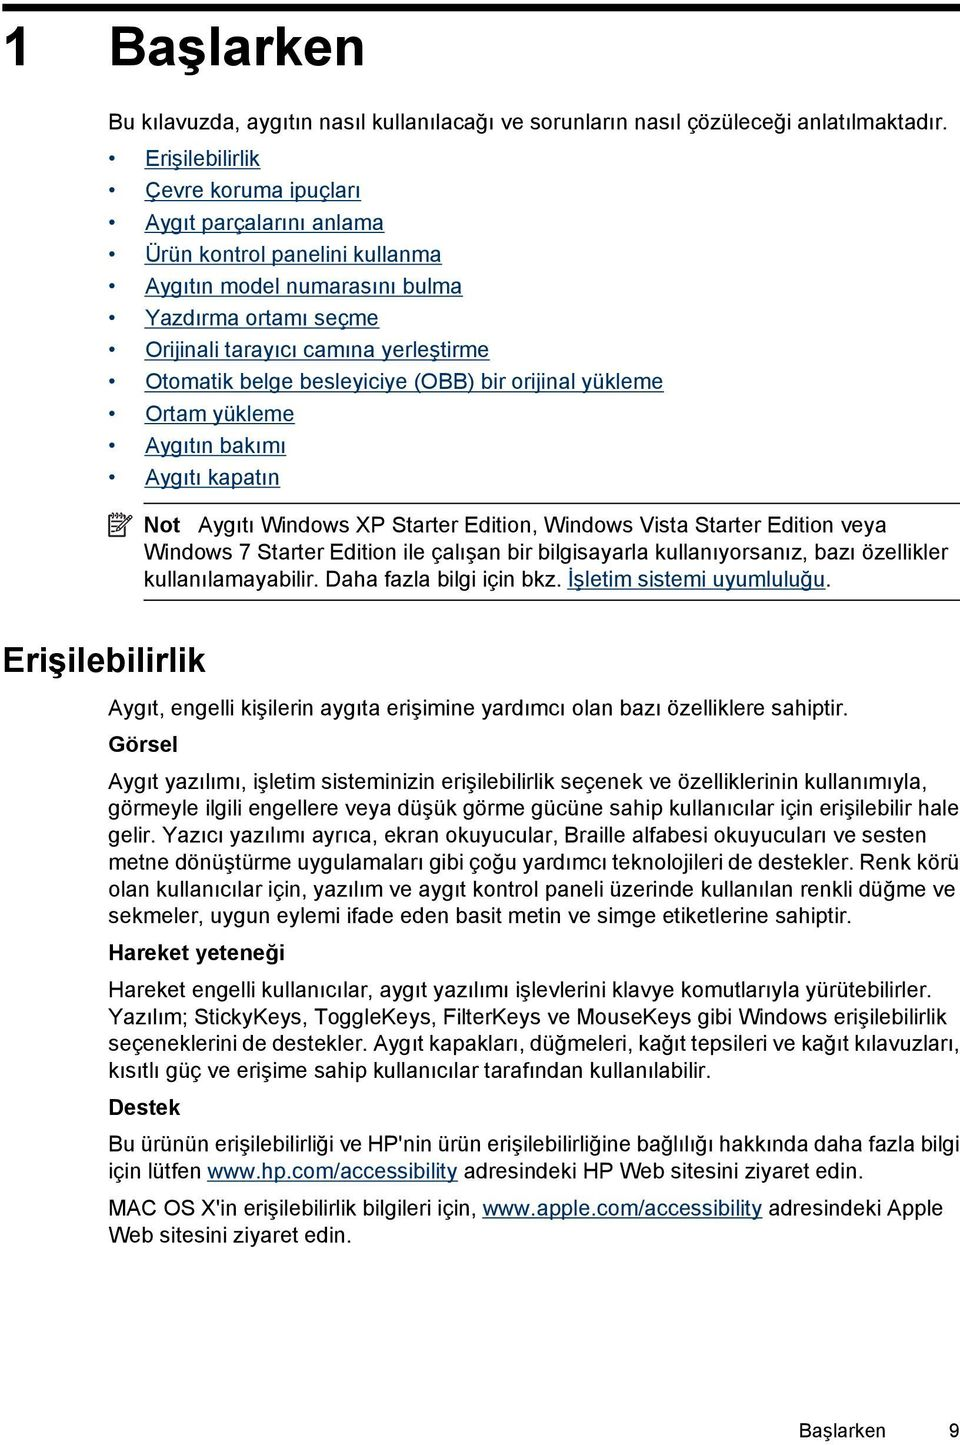 besleyiciye (OBB) bir orijinal yükleme Ortam yükleme Aygıtın bakımı Aygıtı kapatın Not Aygıtı Windows XP Starter Edition, Windows Vista Starter Edition veya Windows 7 Starter Edition ile çalışan bir